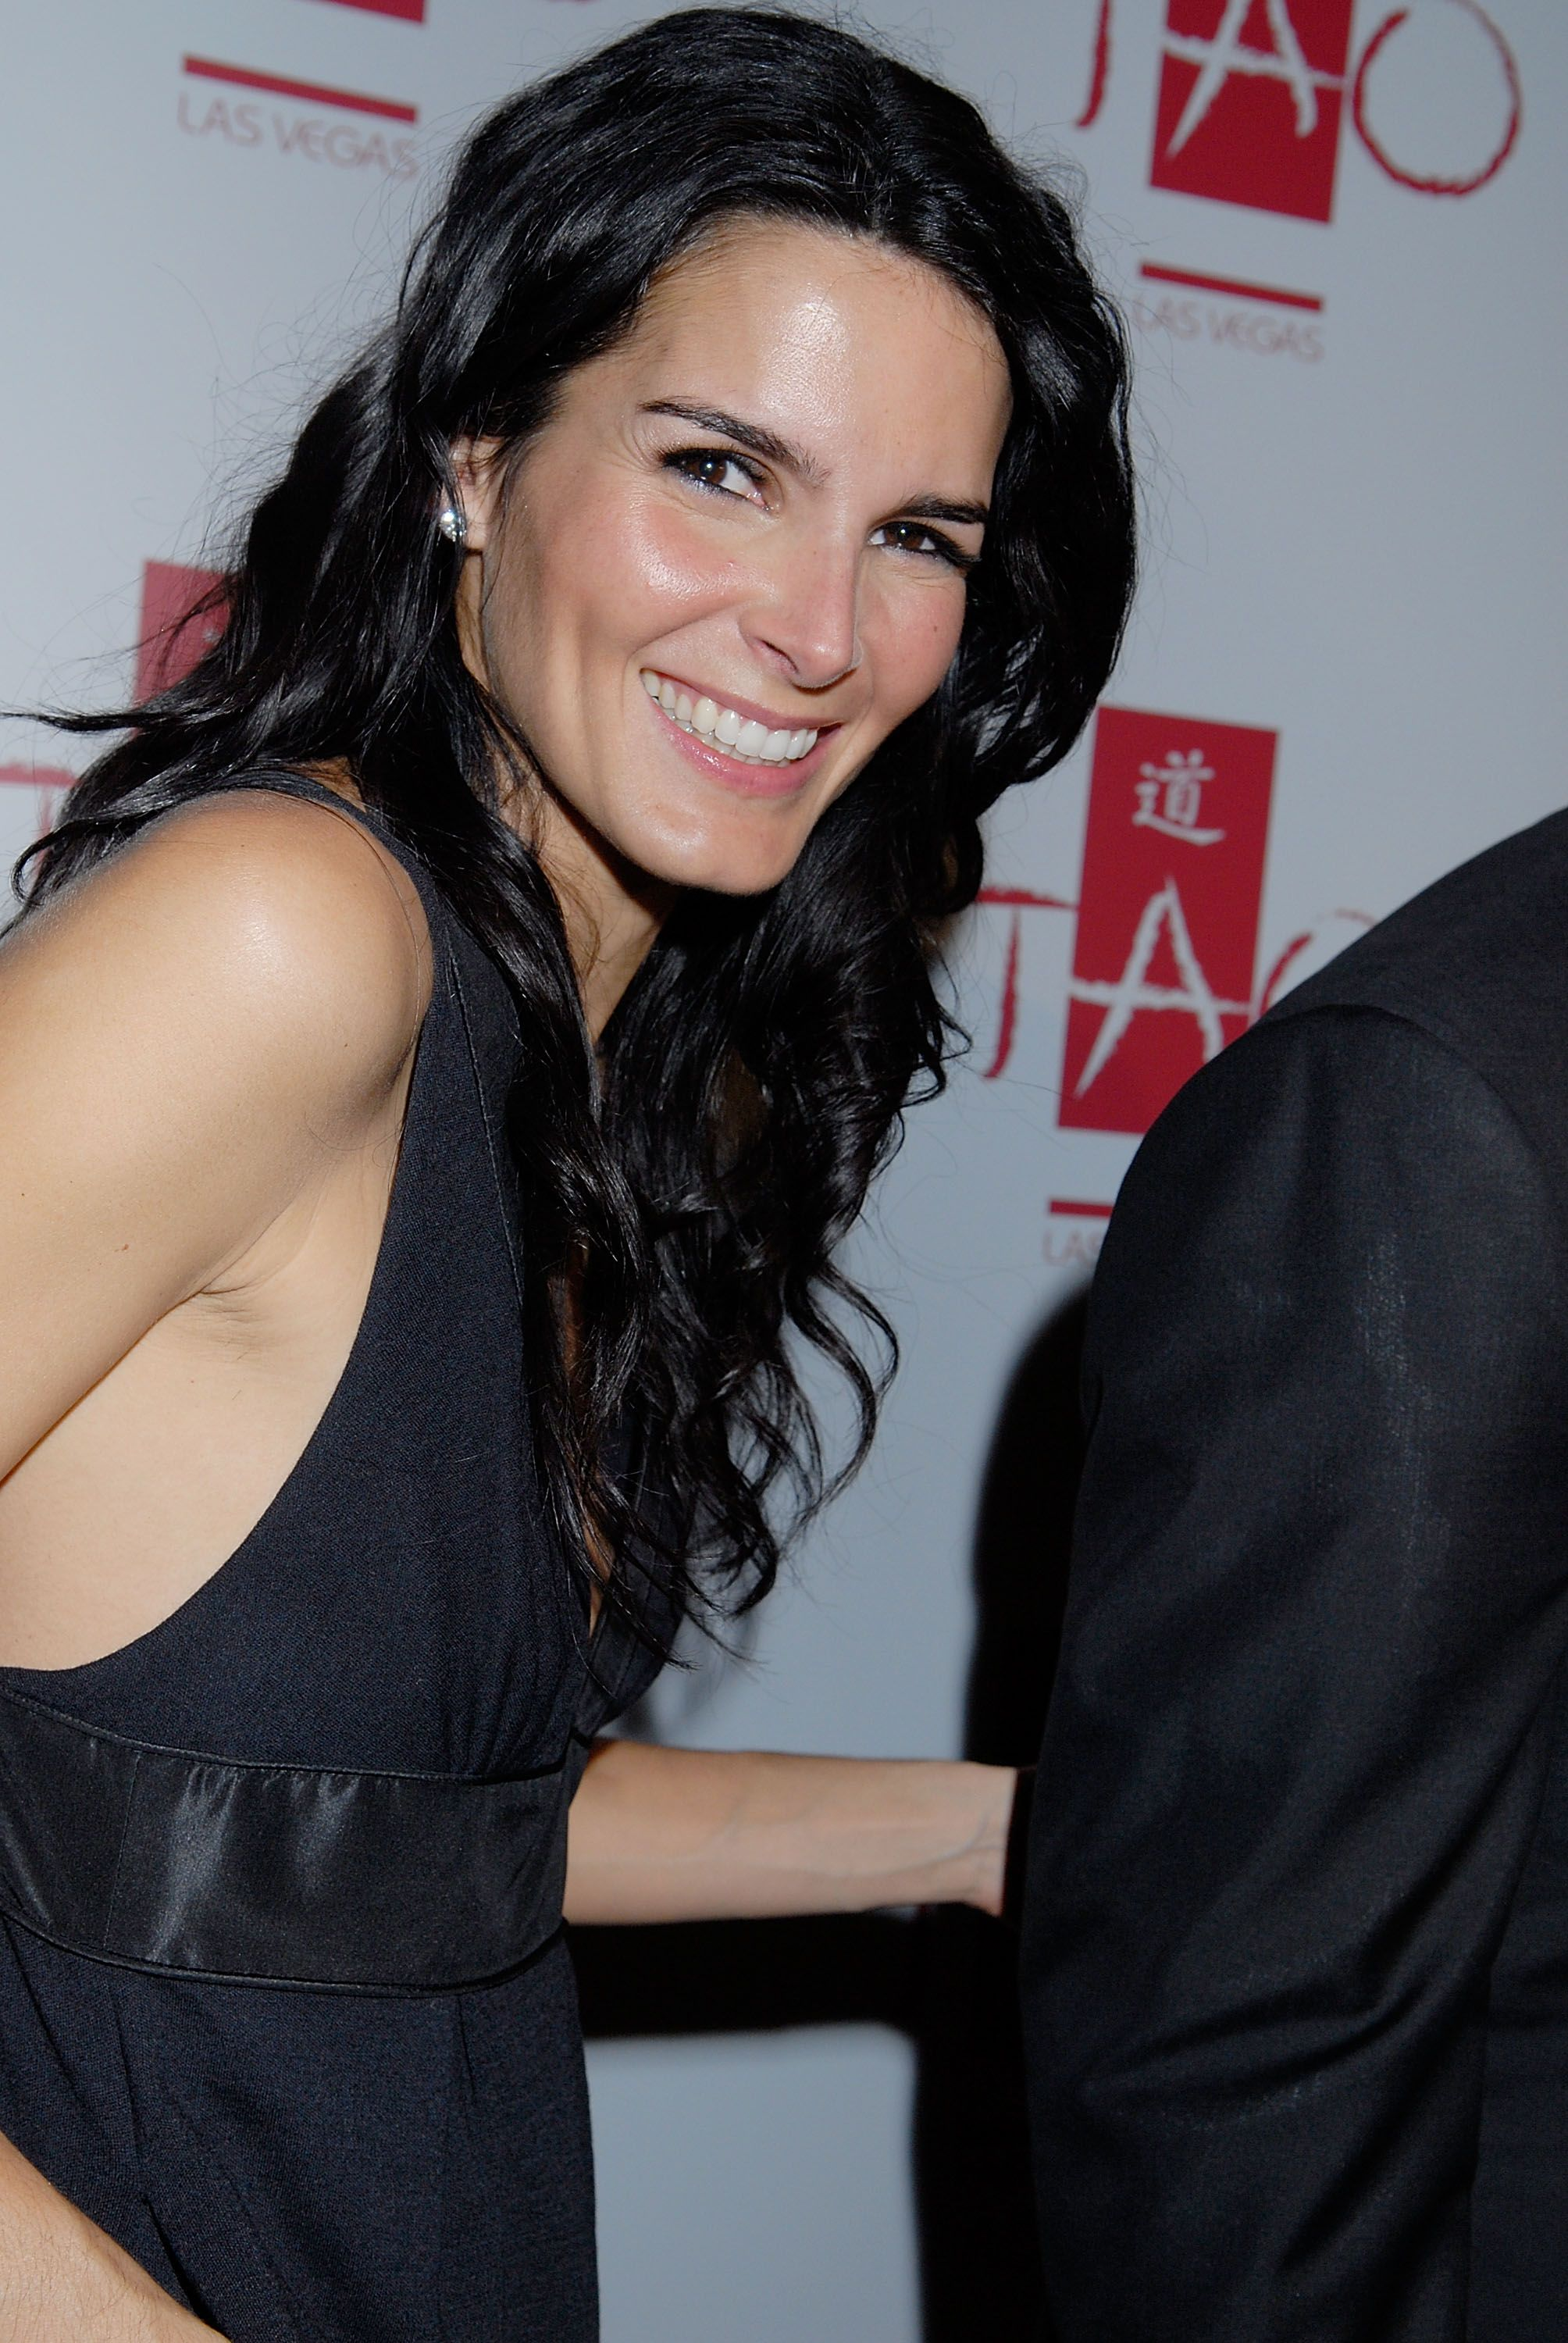 Angie Harmon born August 10, 1972 (age 46) nude (13 photos), Topless, Sideboobs, Twitter, braless 2015